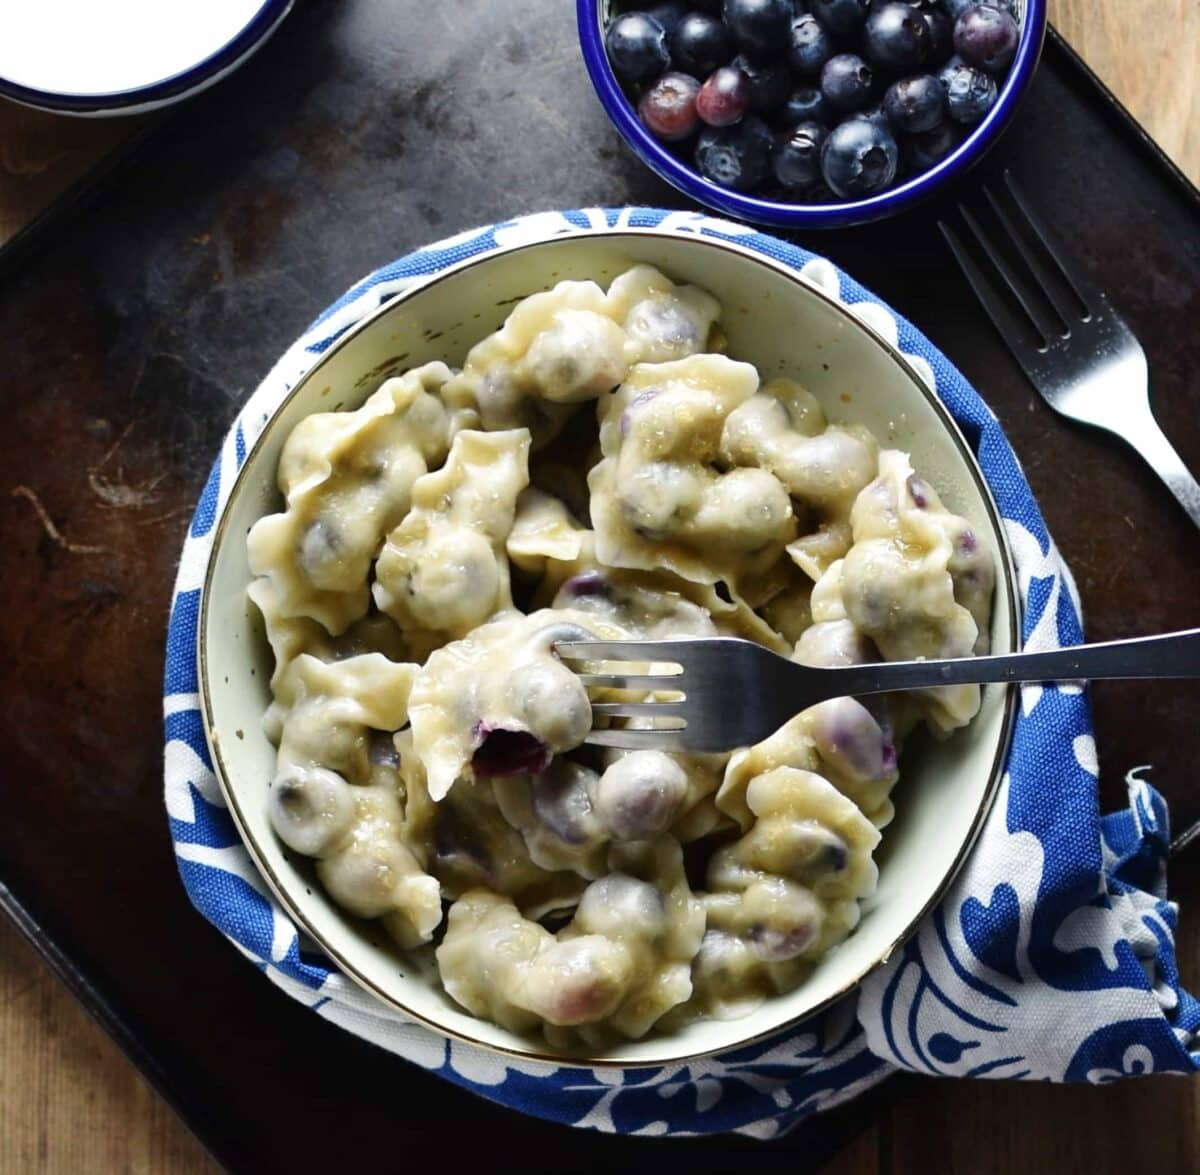 Top down view of blueberry pierogi with fork inside yellow bowl wrapped in blue-and-white cloth, with fork, blueberries in blue dish and yogurt in another dish.